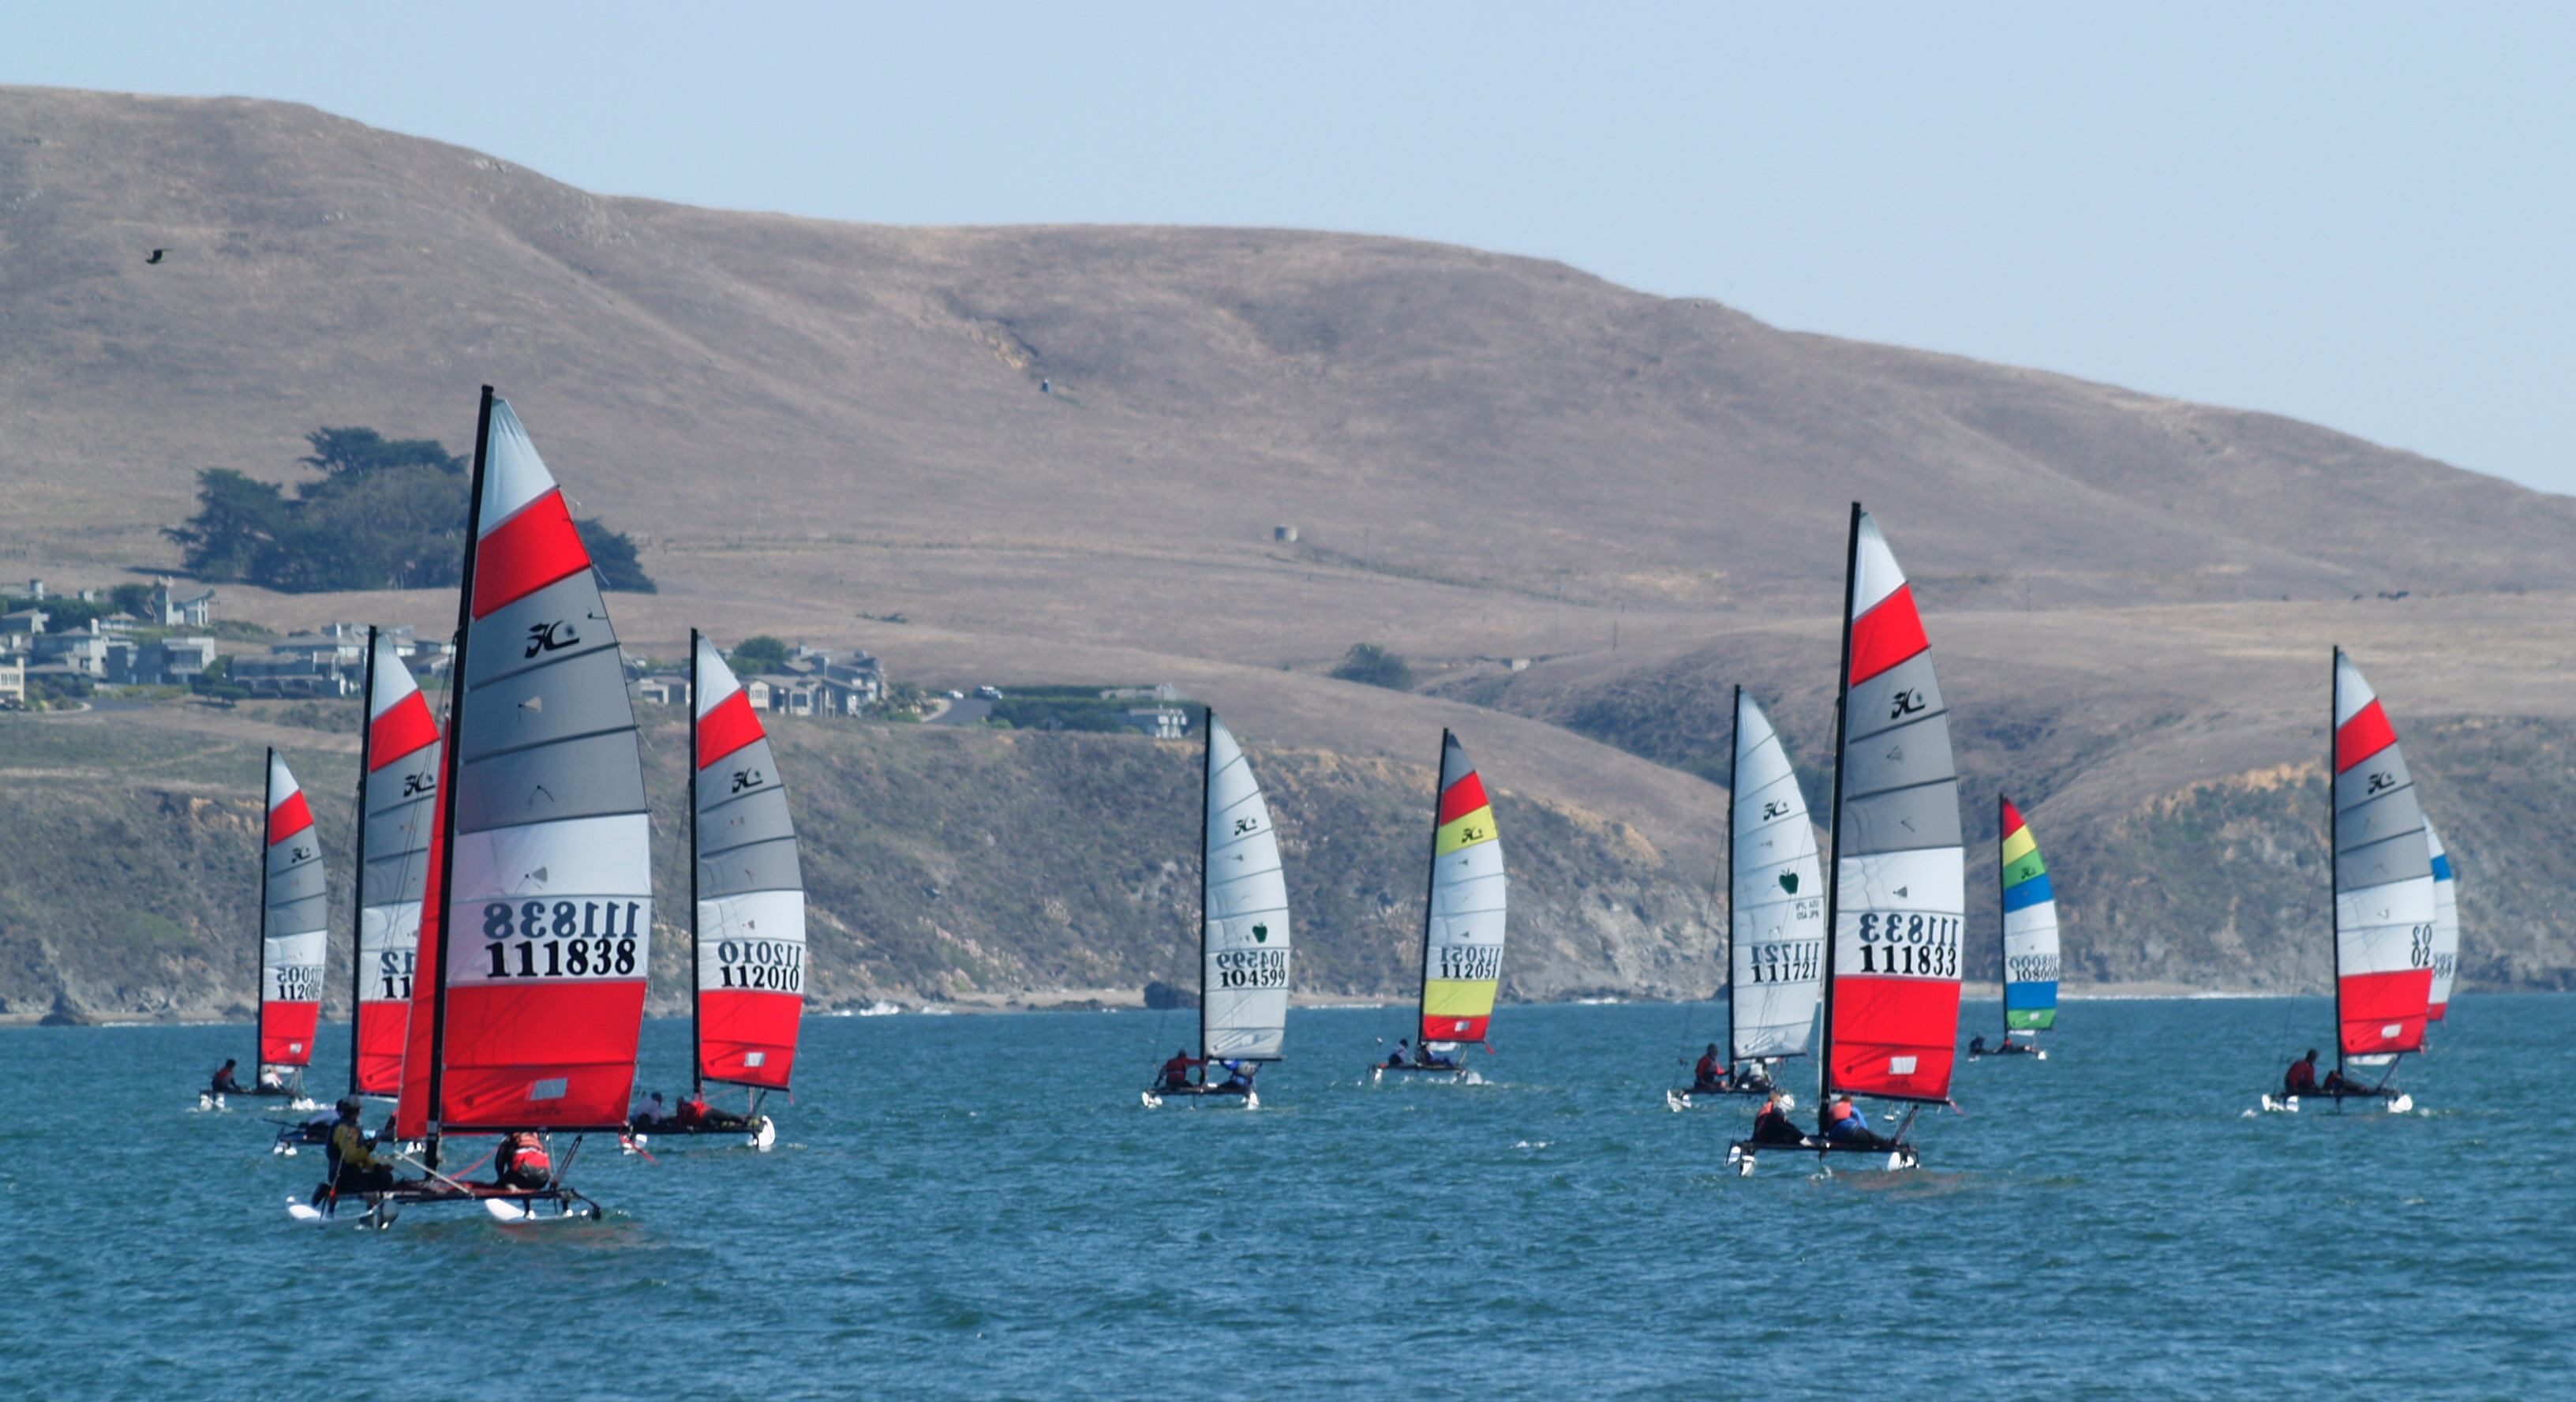 Photography Network: Bodega Bay Hobie Cat Boat Regatta